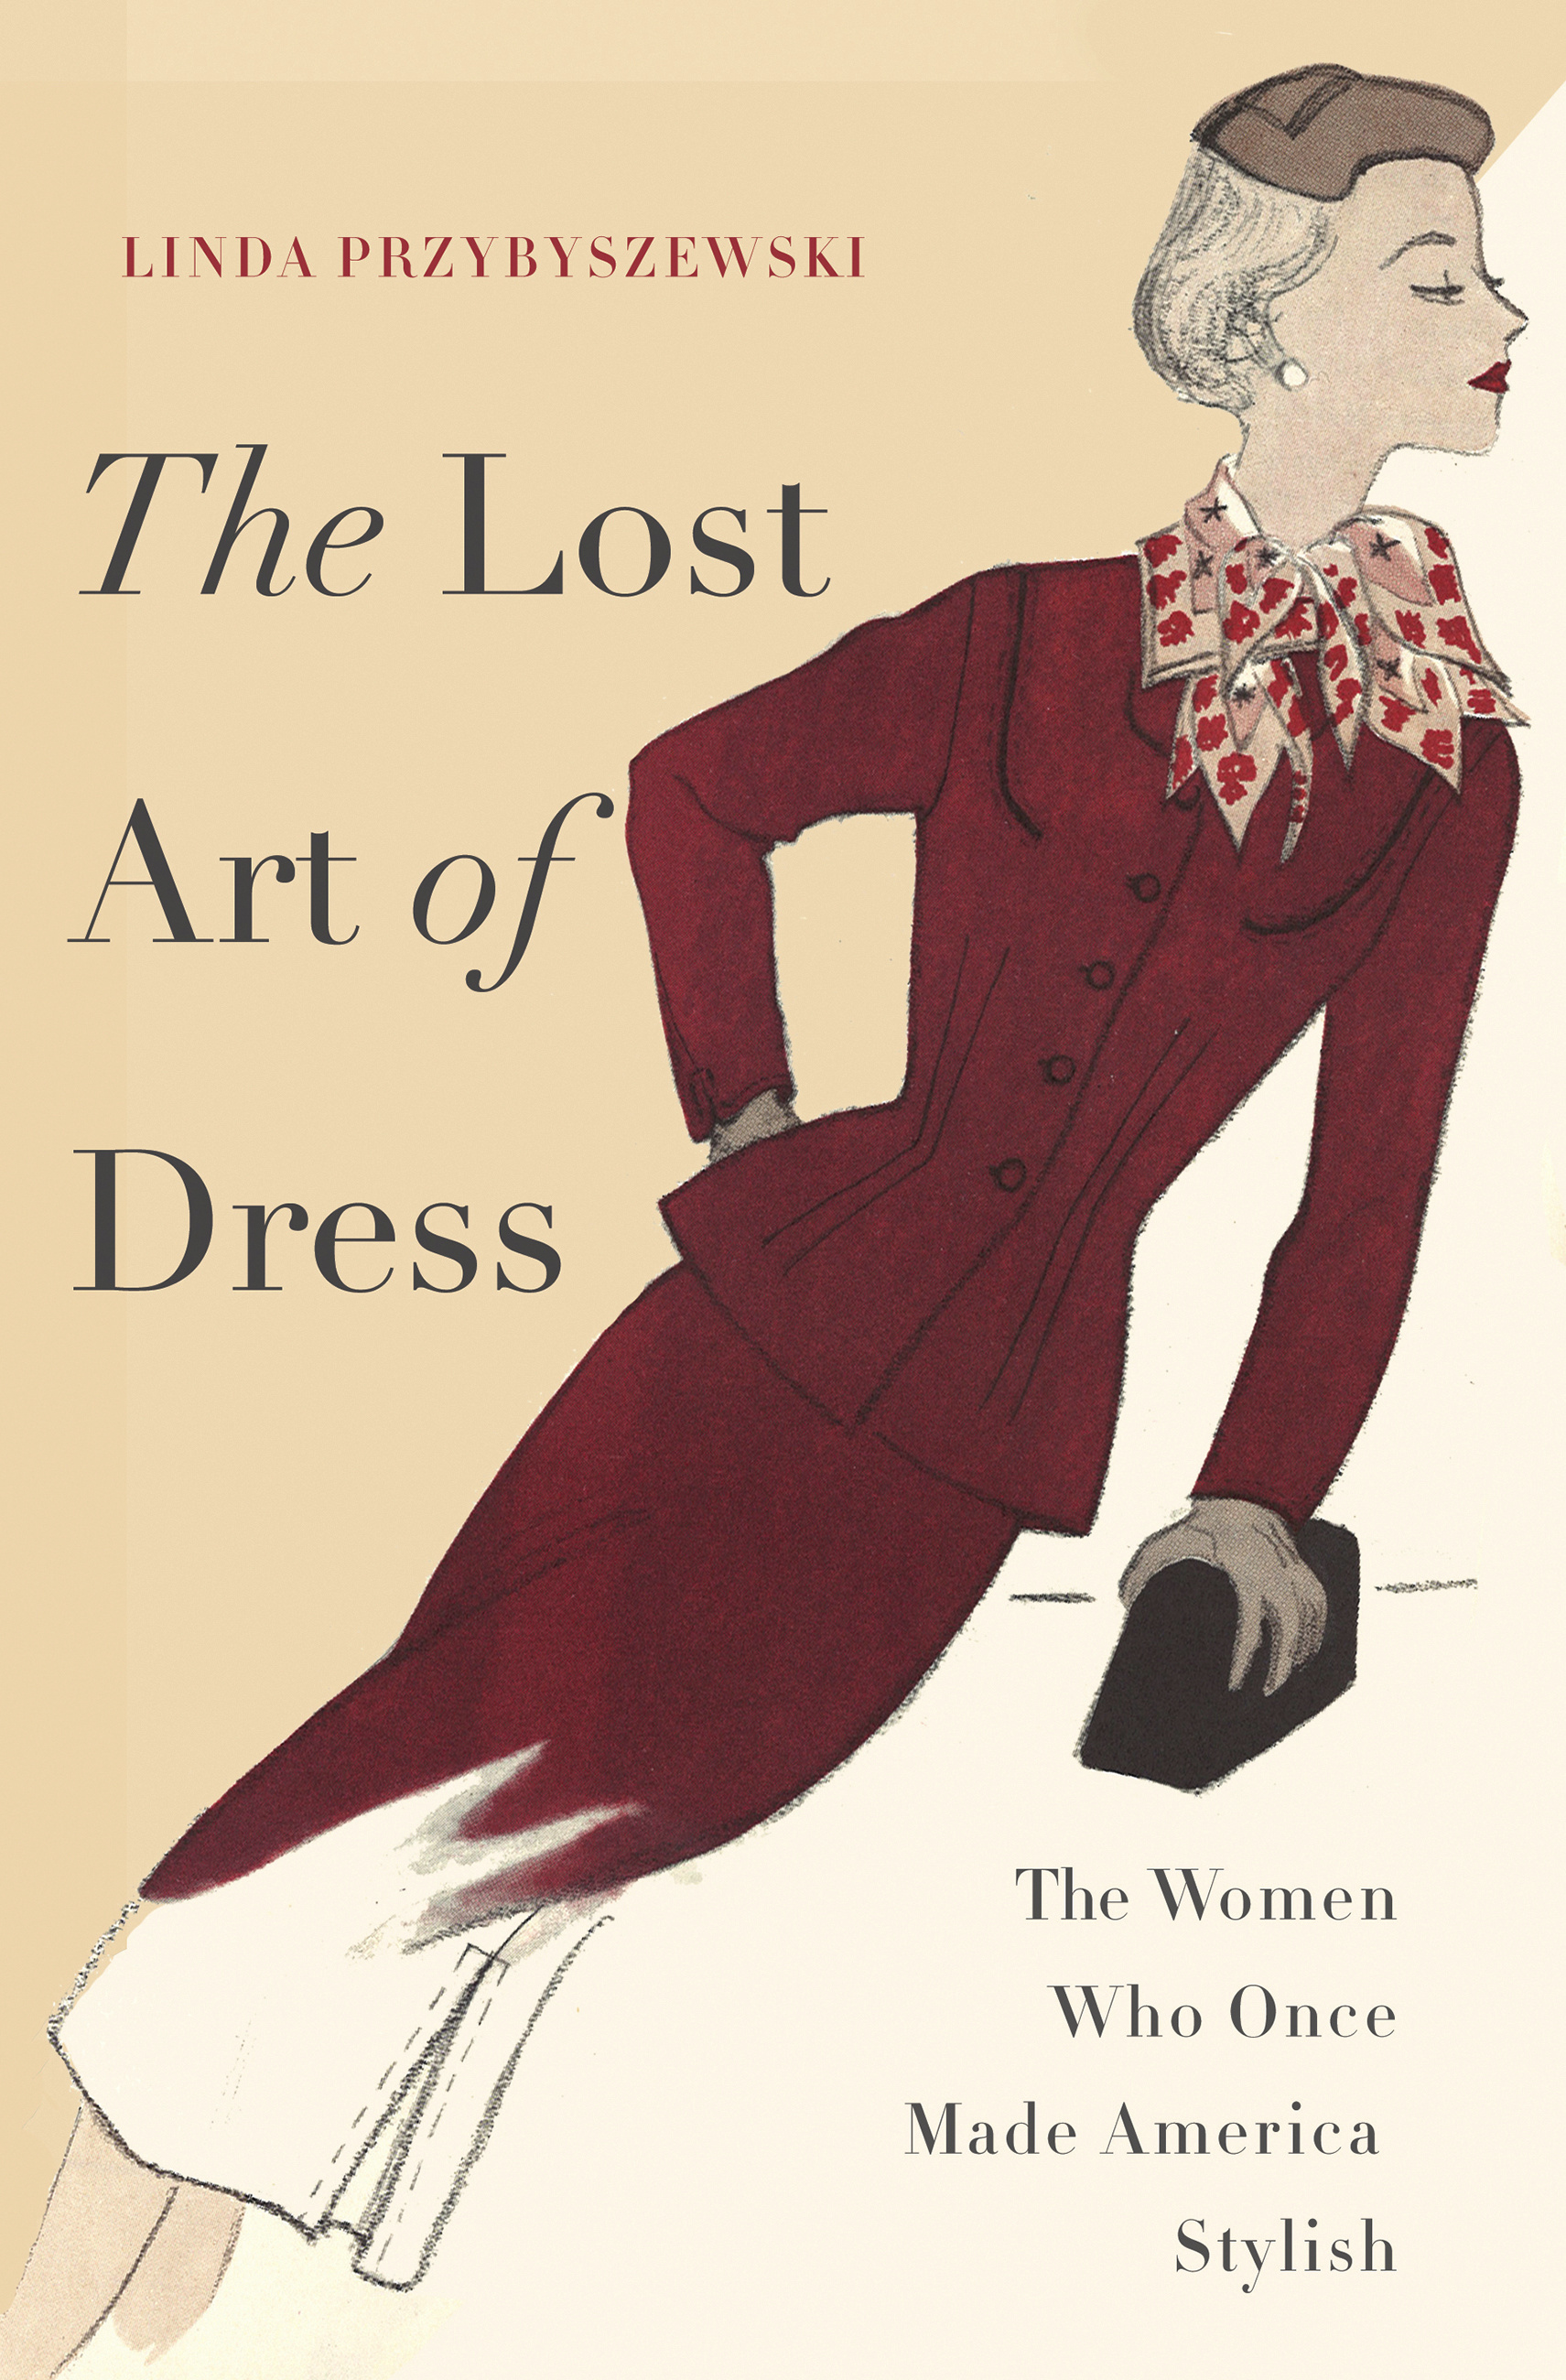 The Lost Art of Dress